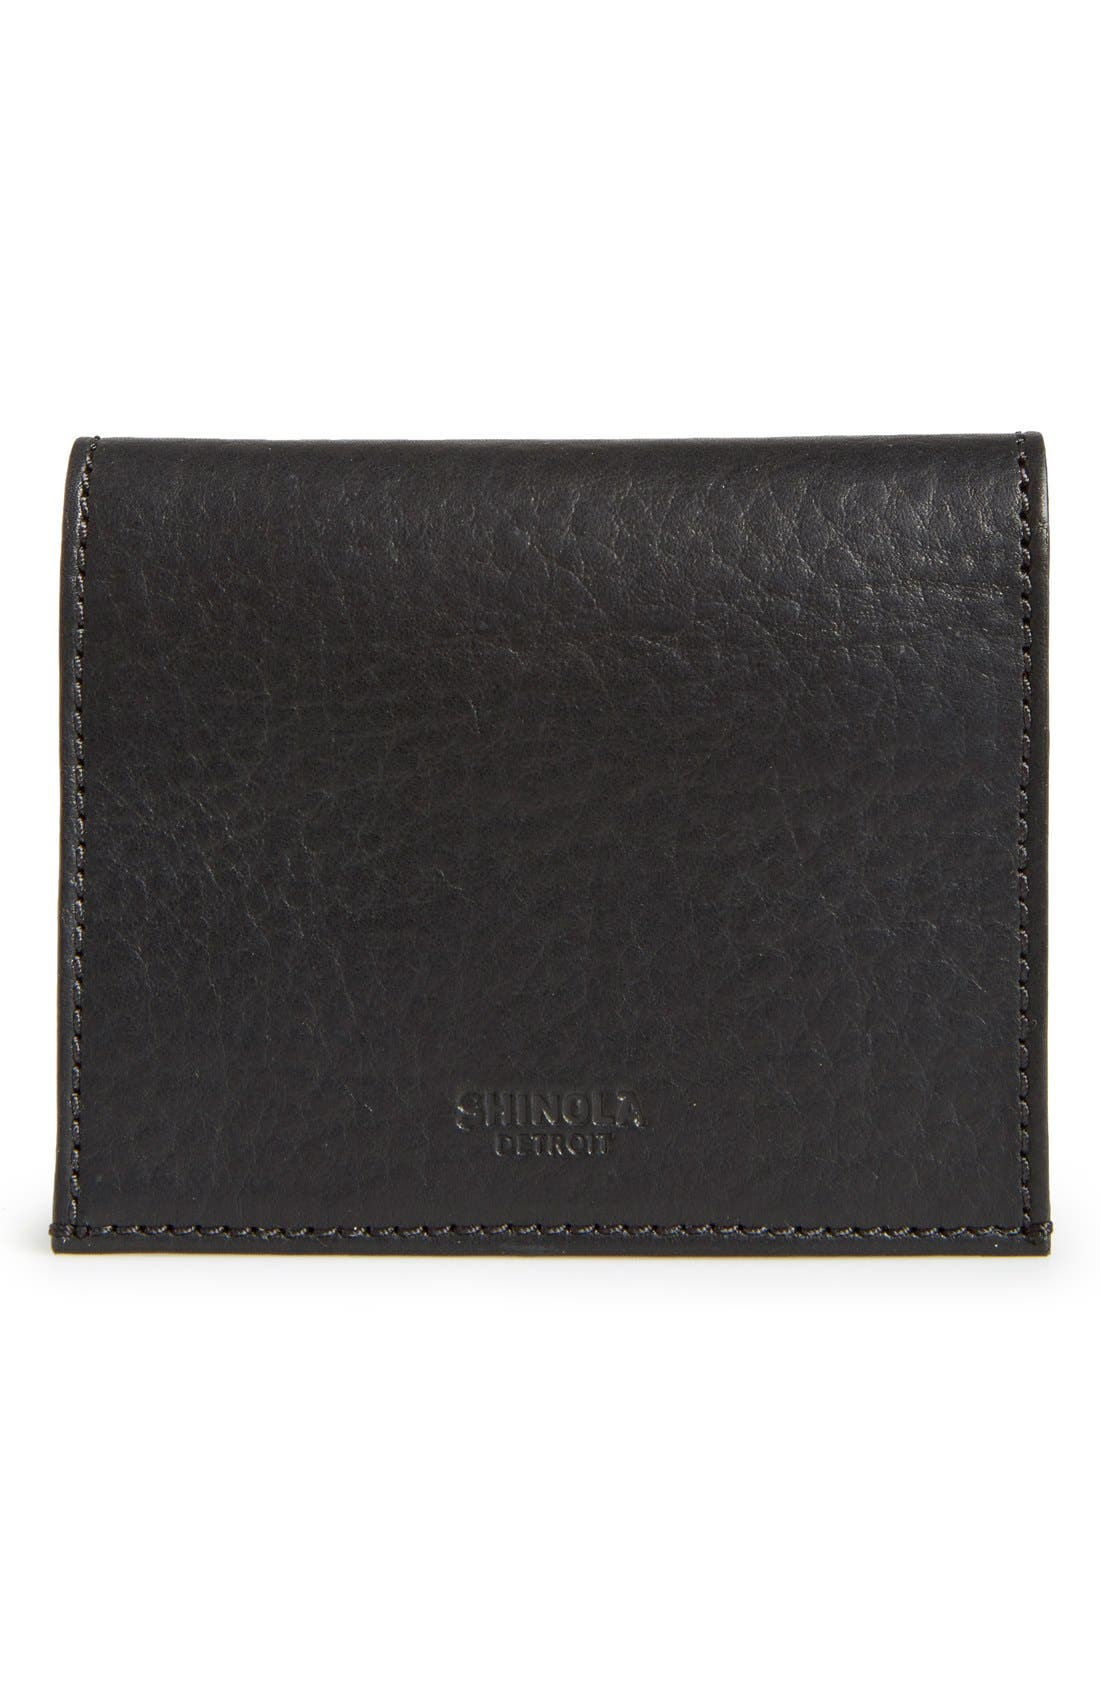 Alternate Image 1 Selected - Shinola Gusset Leather Card Case